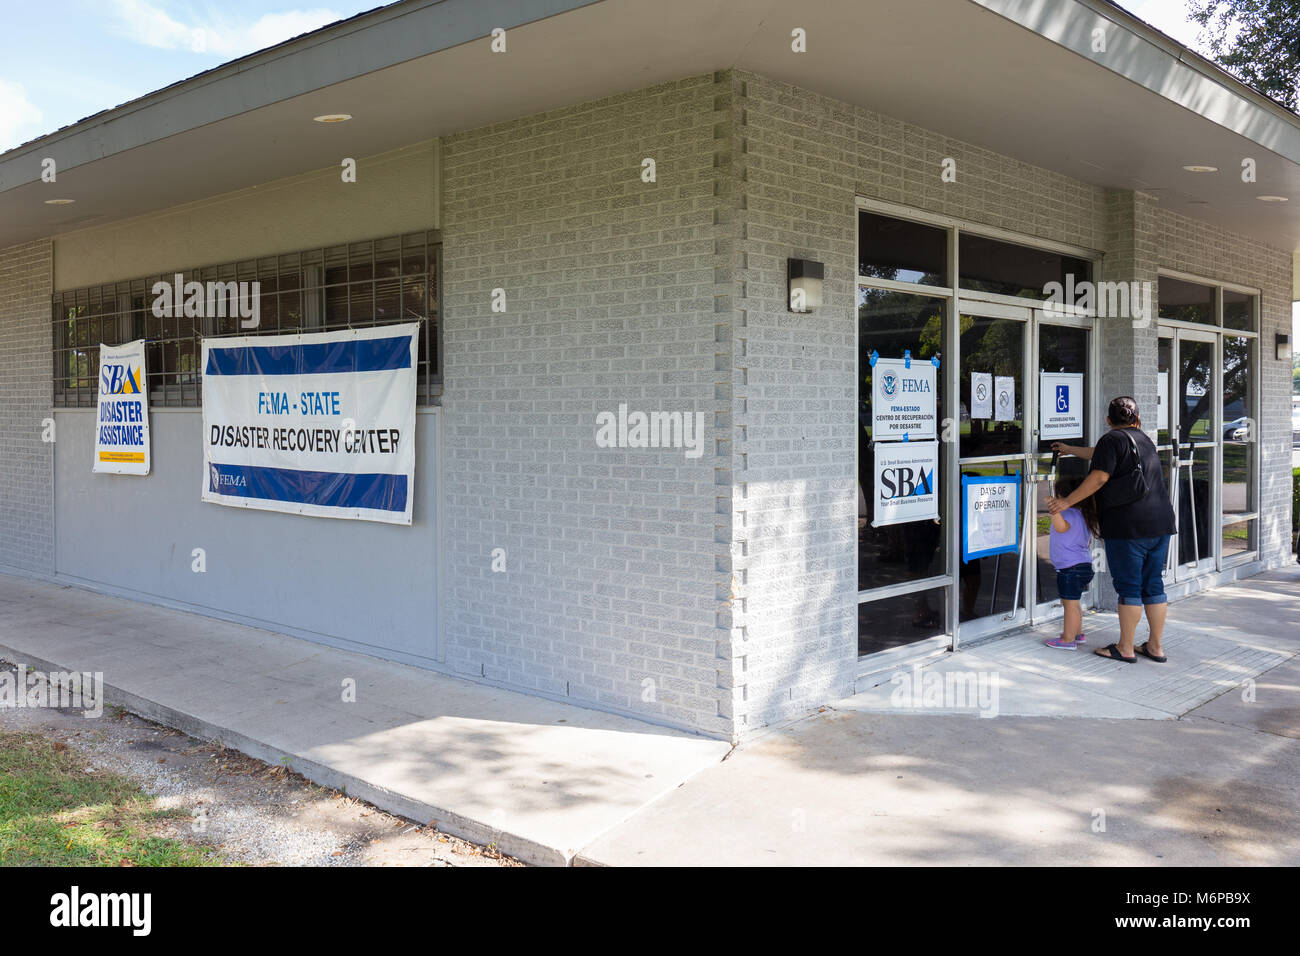 A State of Texas/FEMA Disaster Recovery Center at the Bayland Community Center (Harris County) staffed with recovery - Stock Image